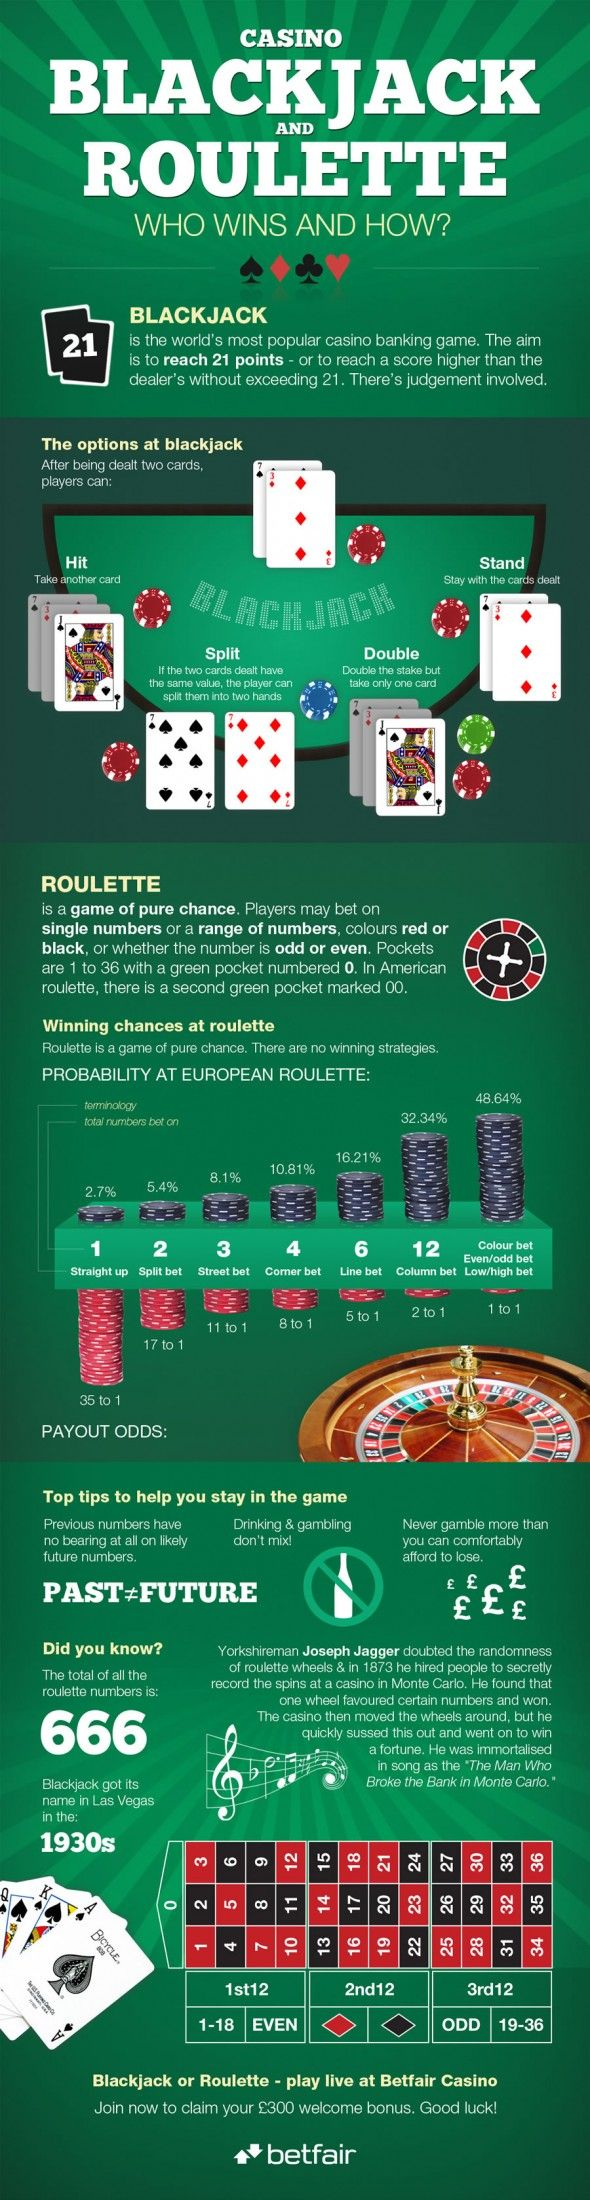 www.casinowars.club Infographic: Casino Blackjack and Roulette, Who Wins and How?